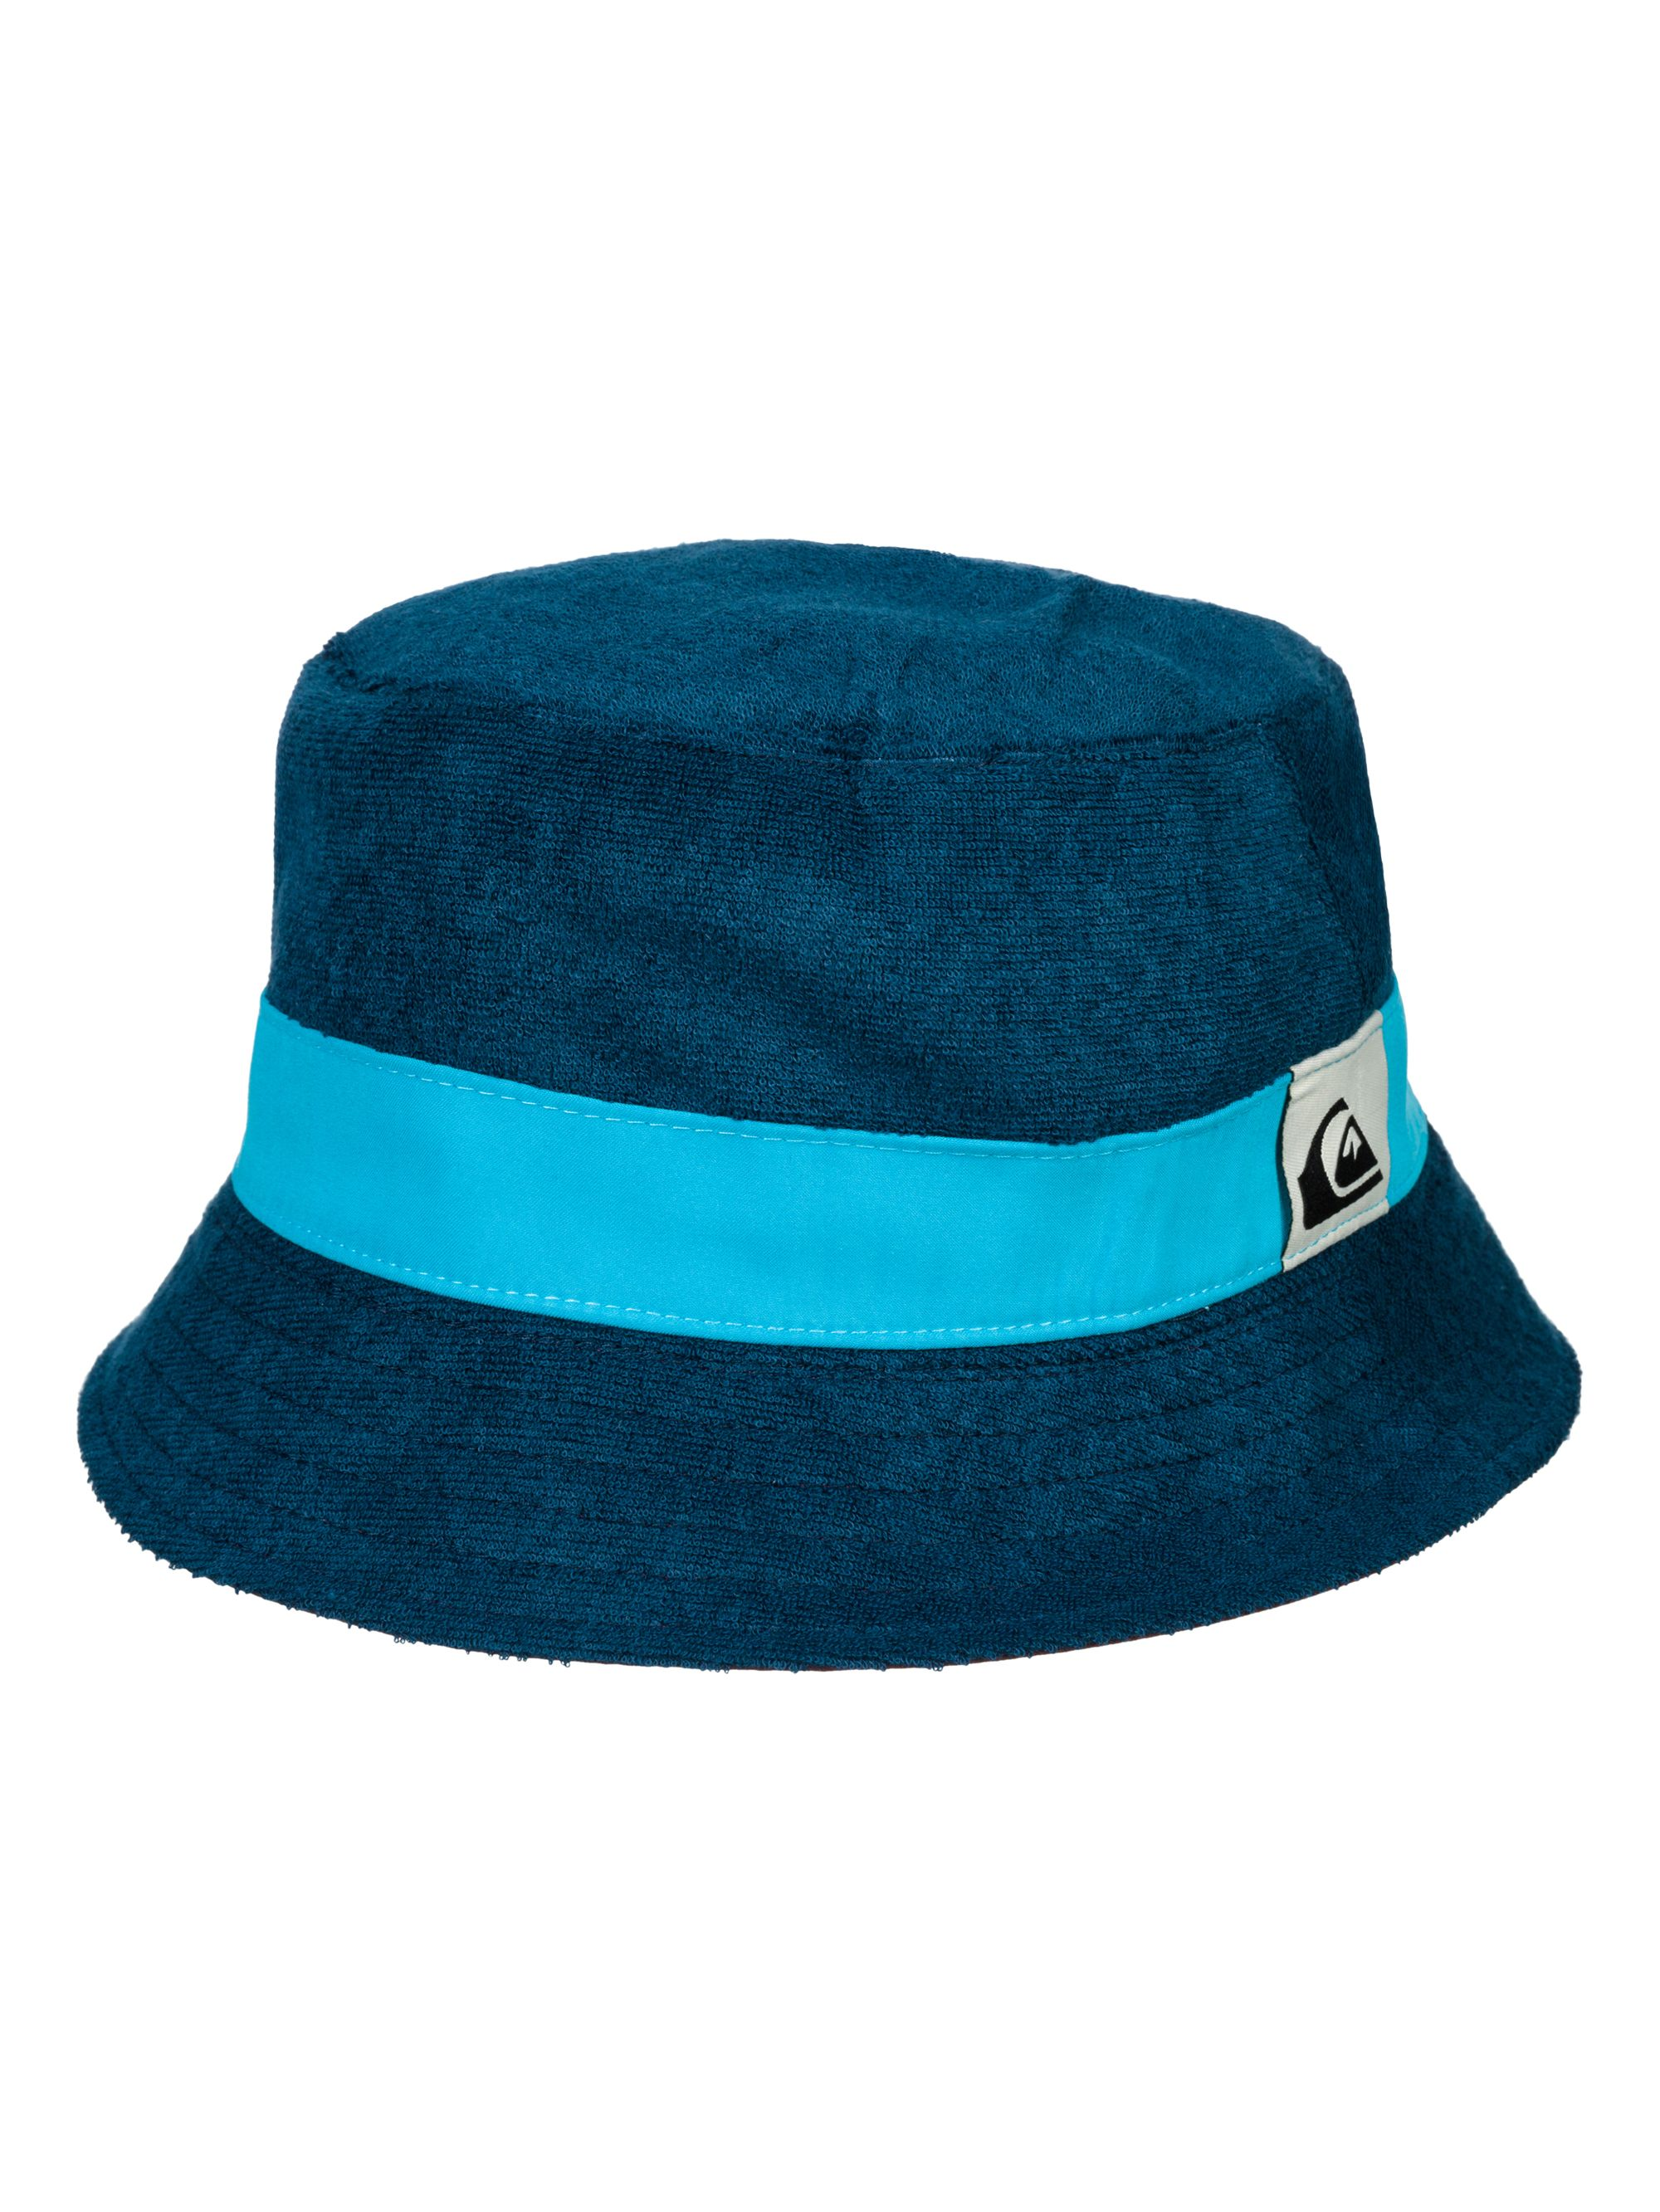 Gallons hat